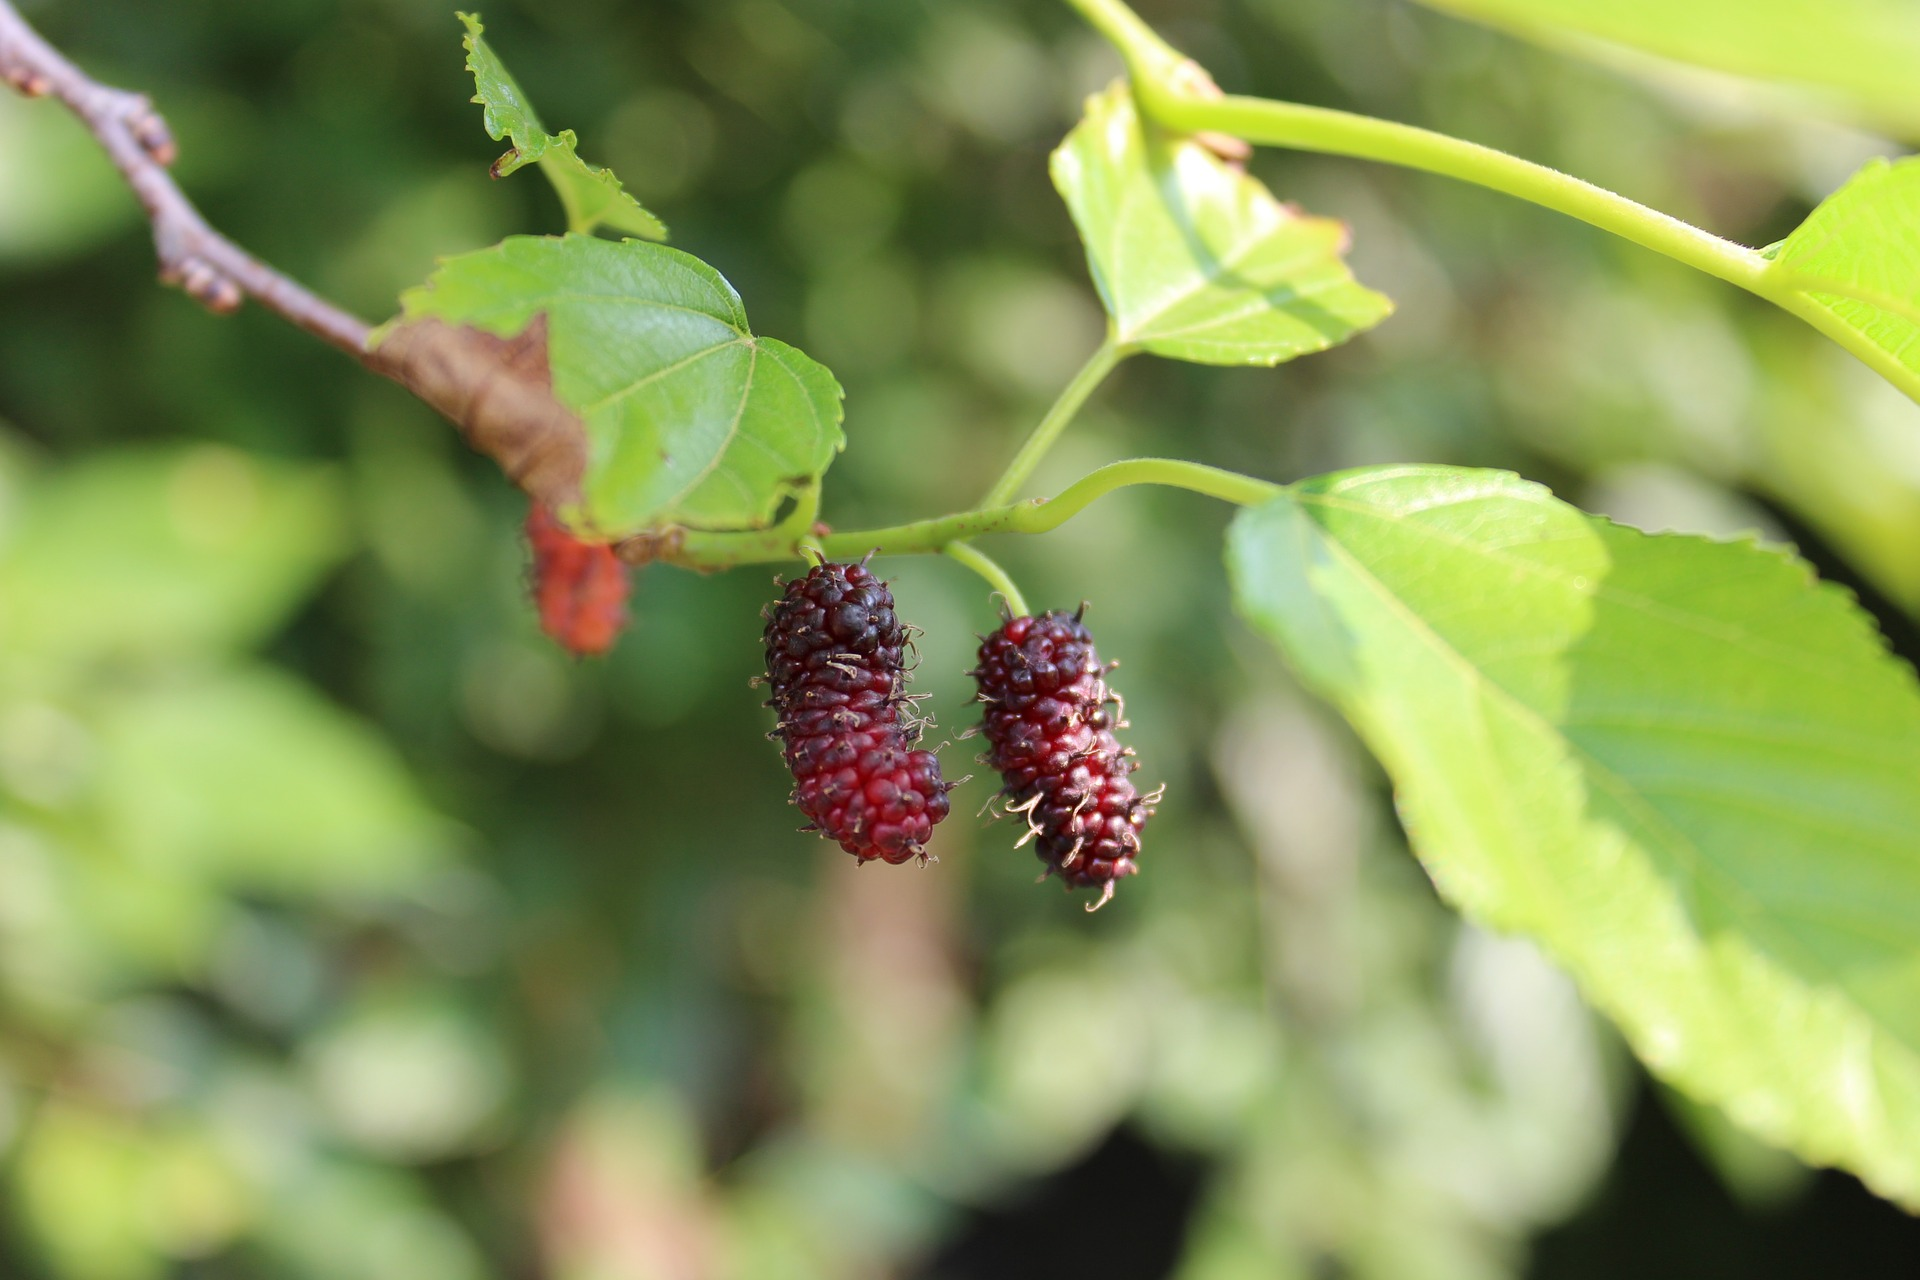 Growing Mulberries in Your Backyard